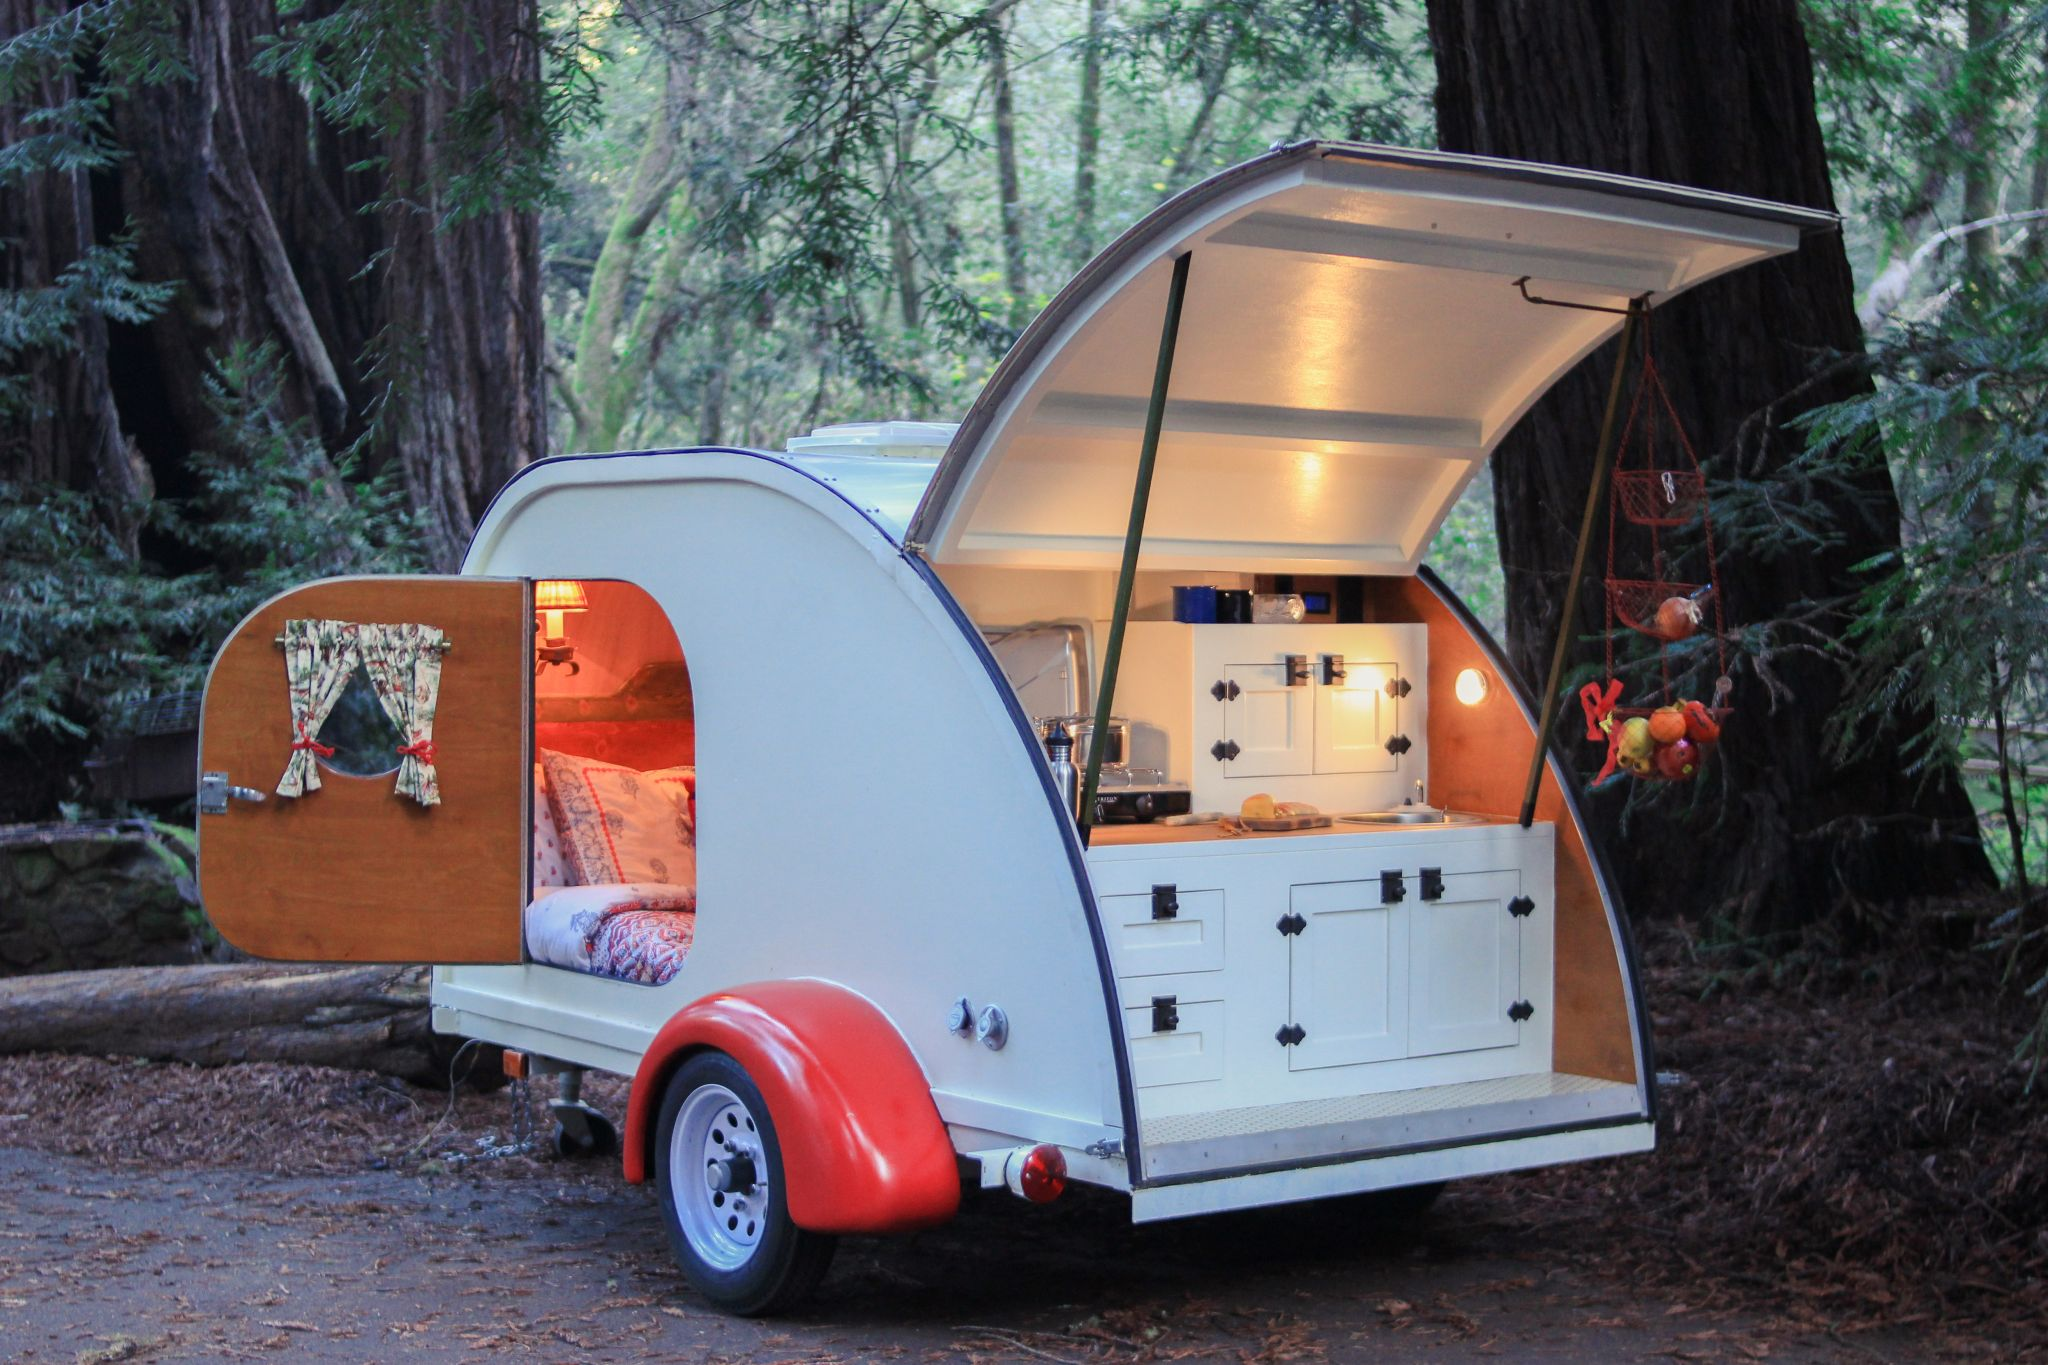 The Millennials' tent: This vintage trailer is making a